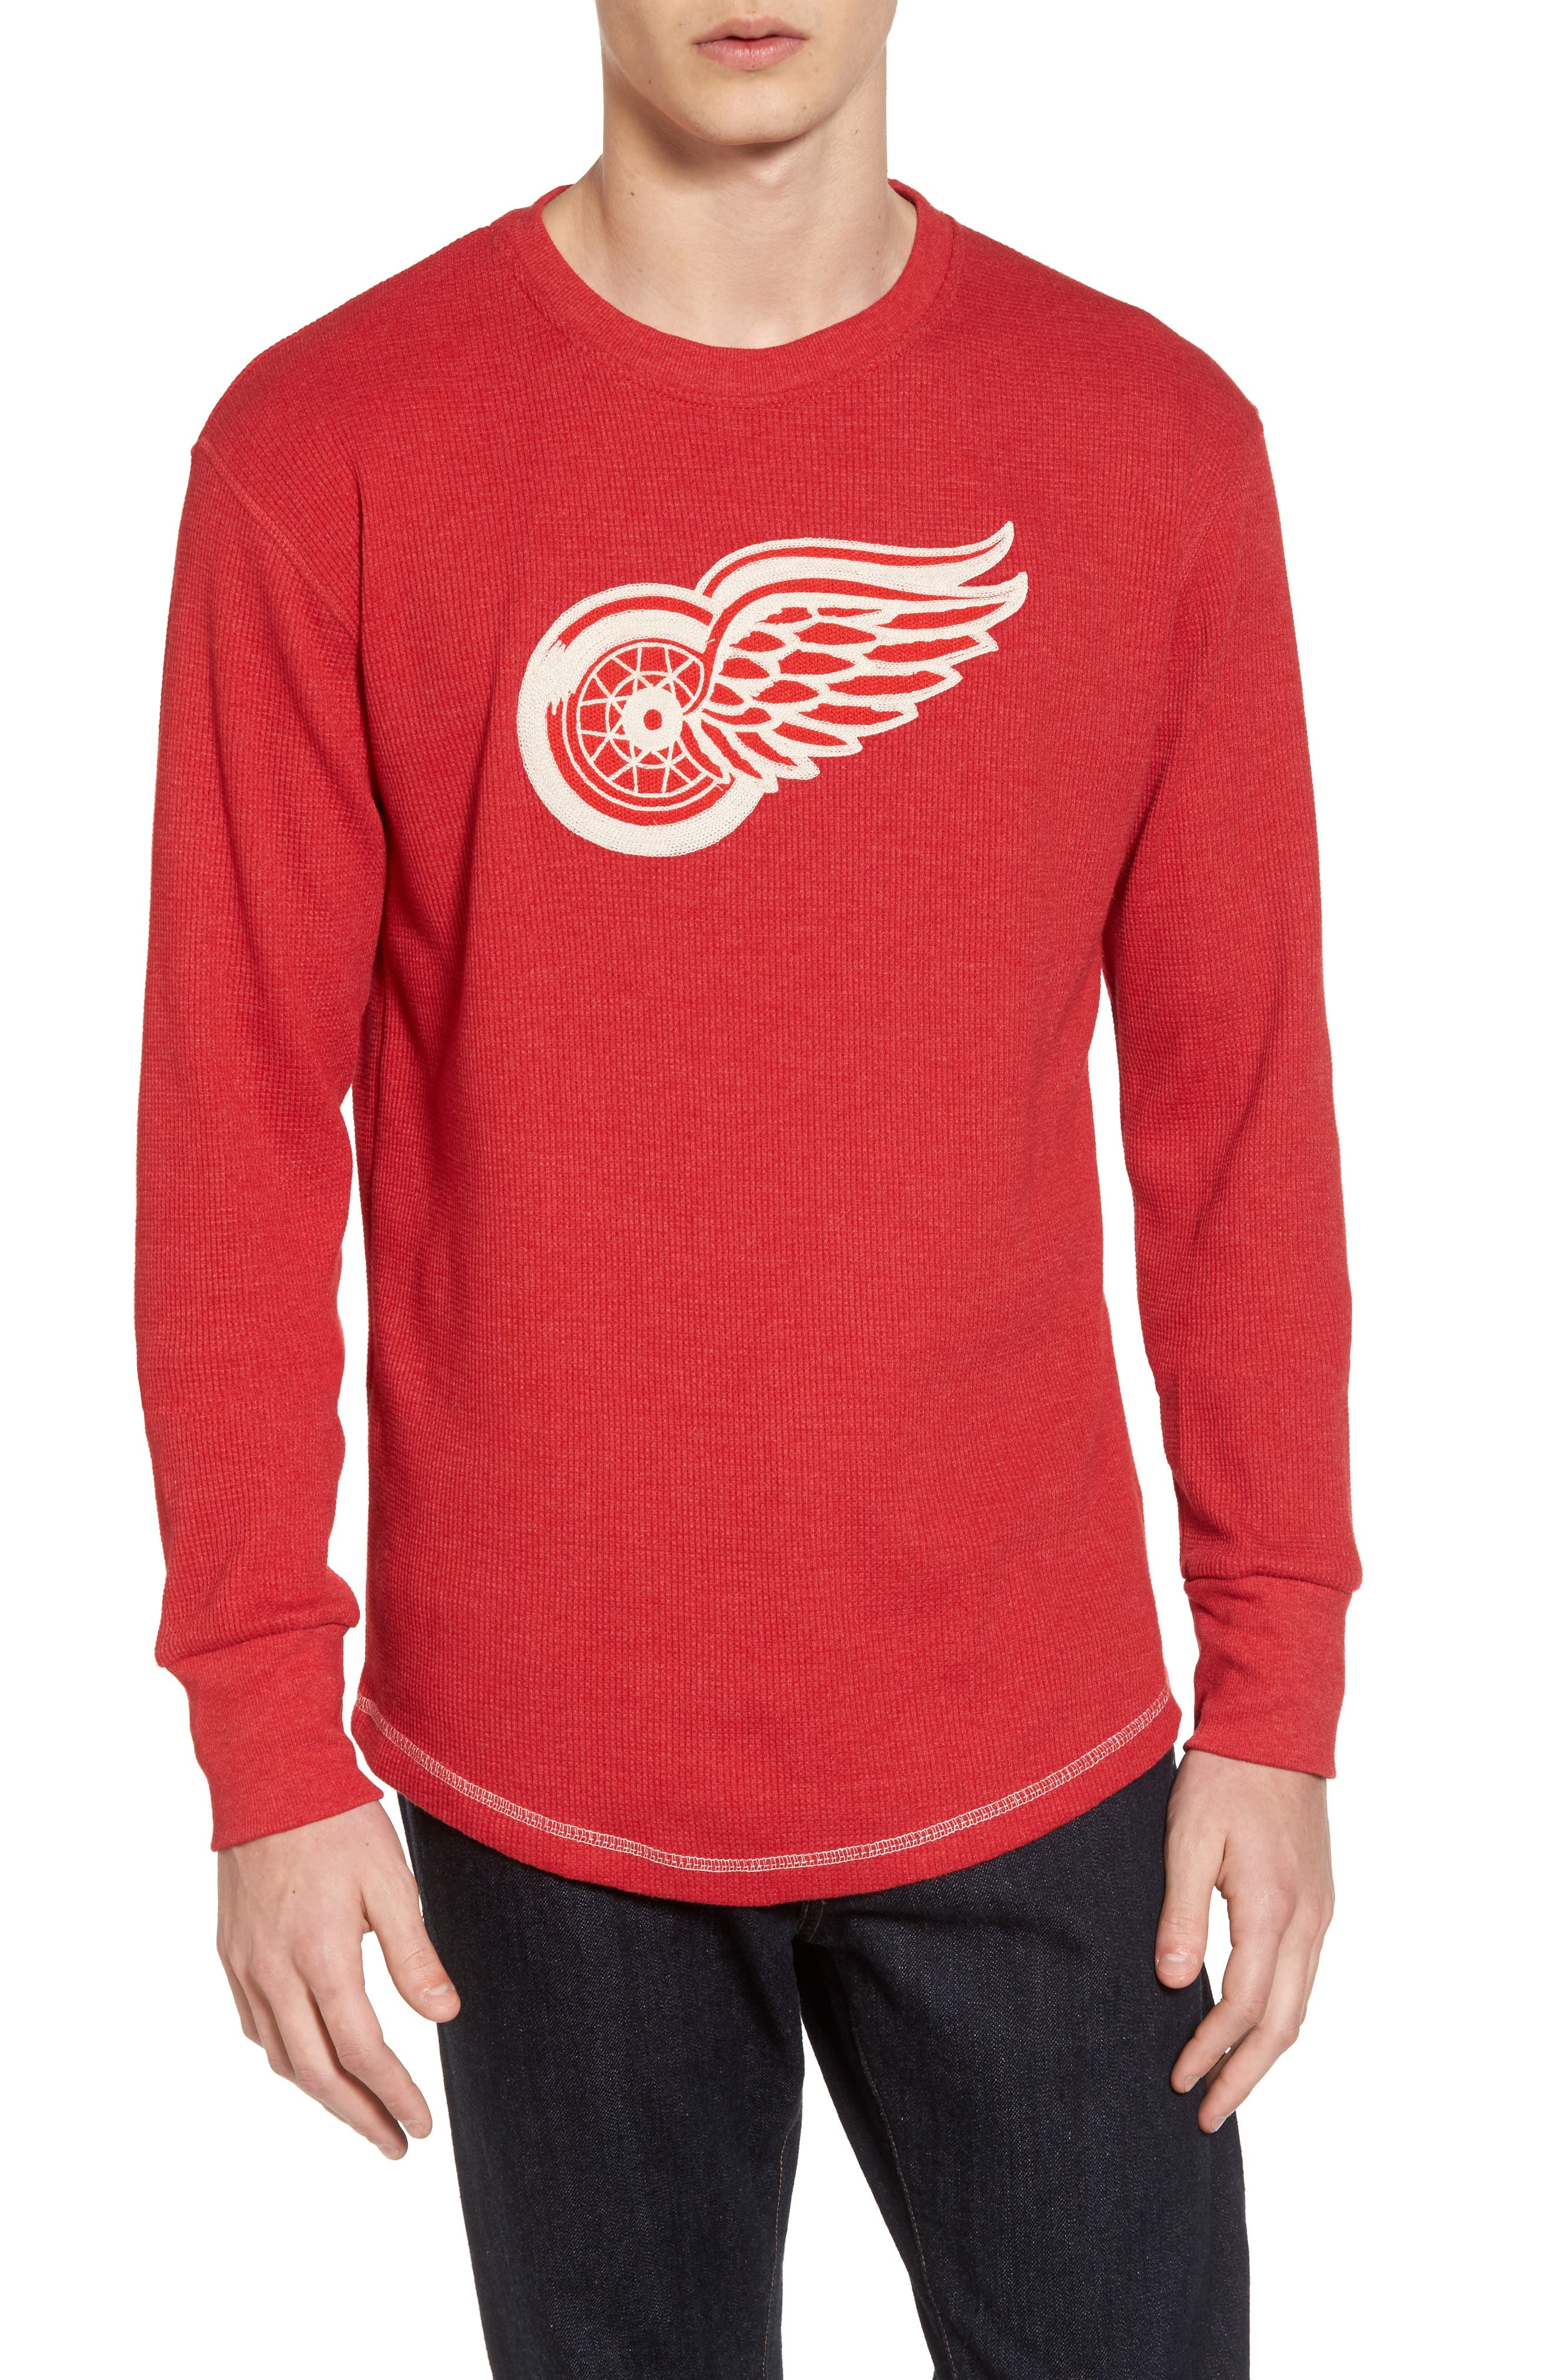 Detroit Red Wings Embroidered Long Sleeve Thermal Shirt,                         Main,                         color, Red